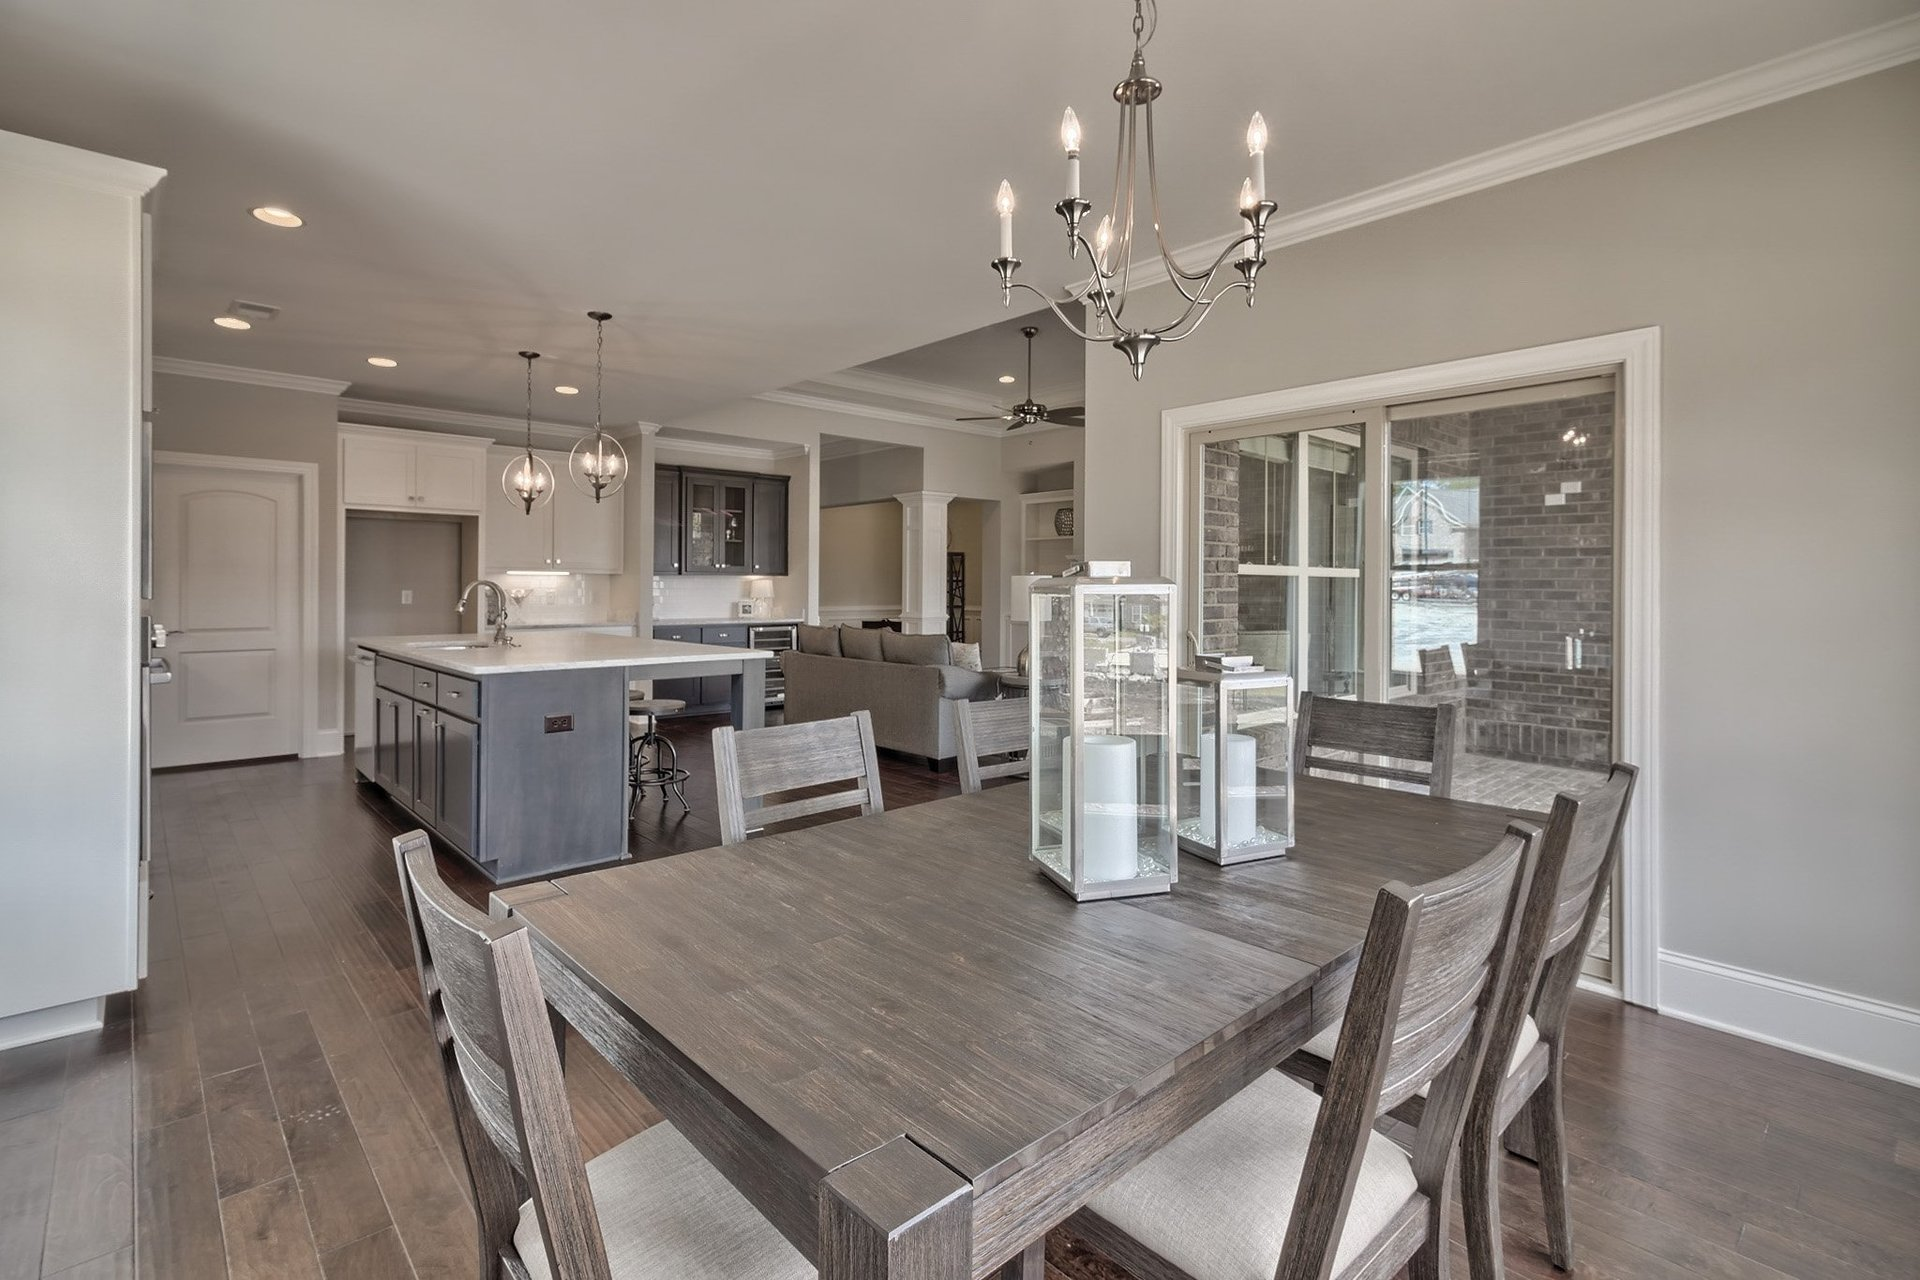 kitchen and dining area in new home development at Woodcreek Farms Elgin SC